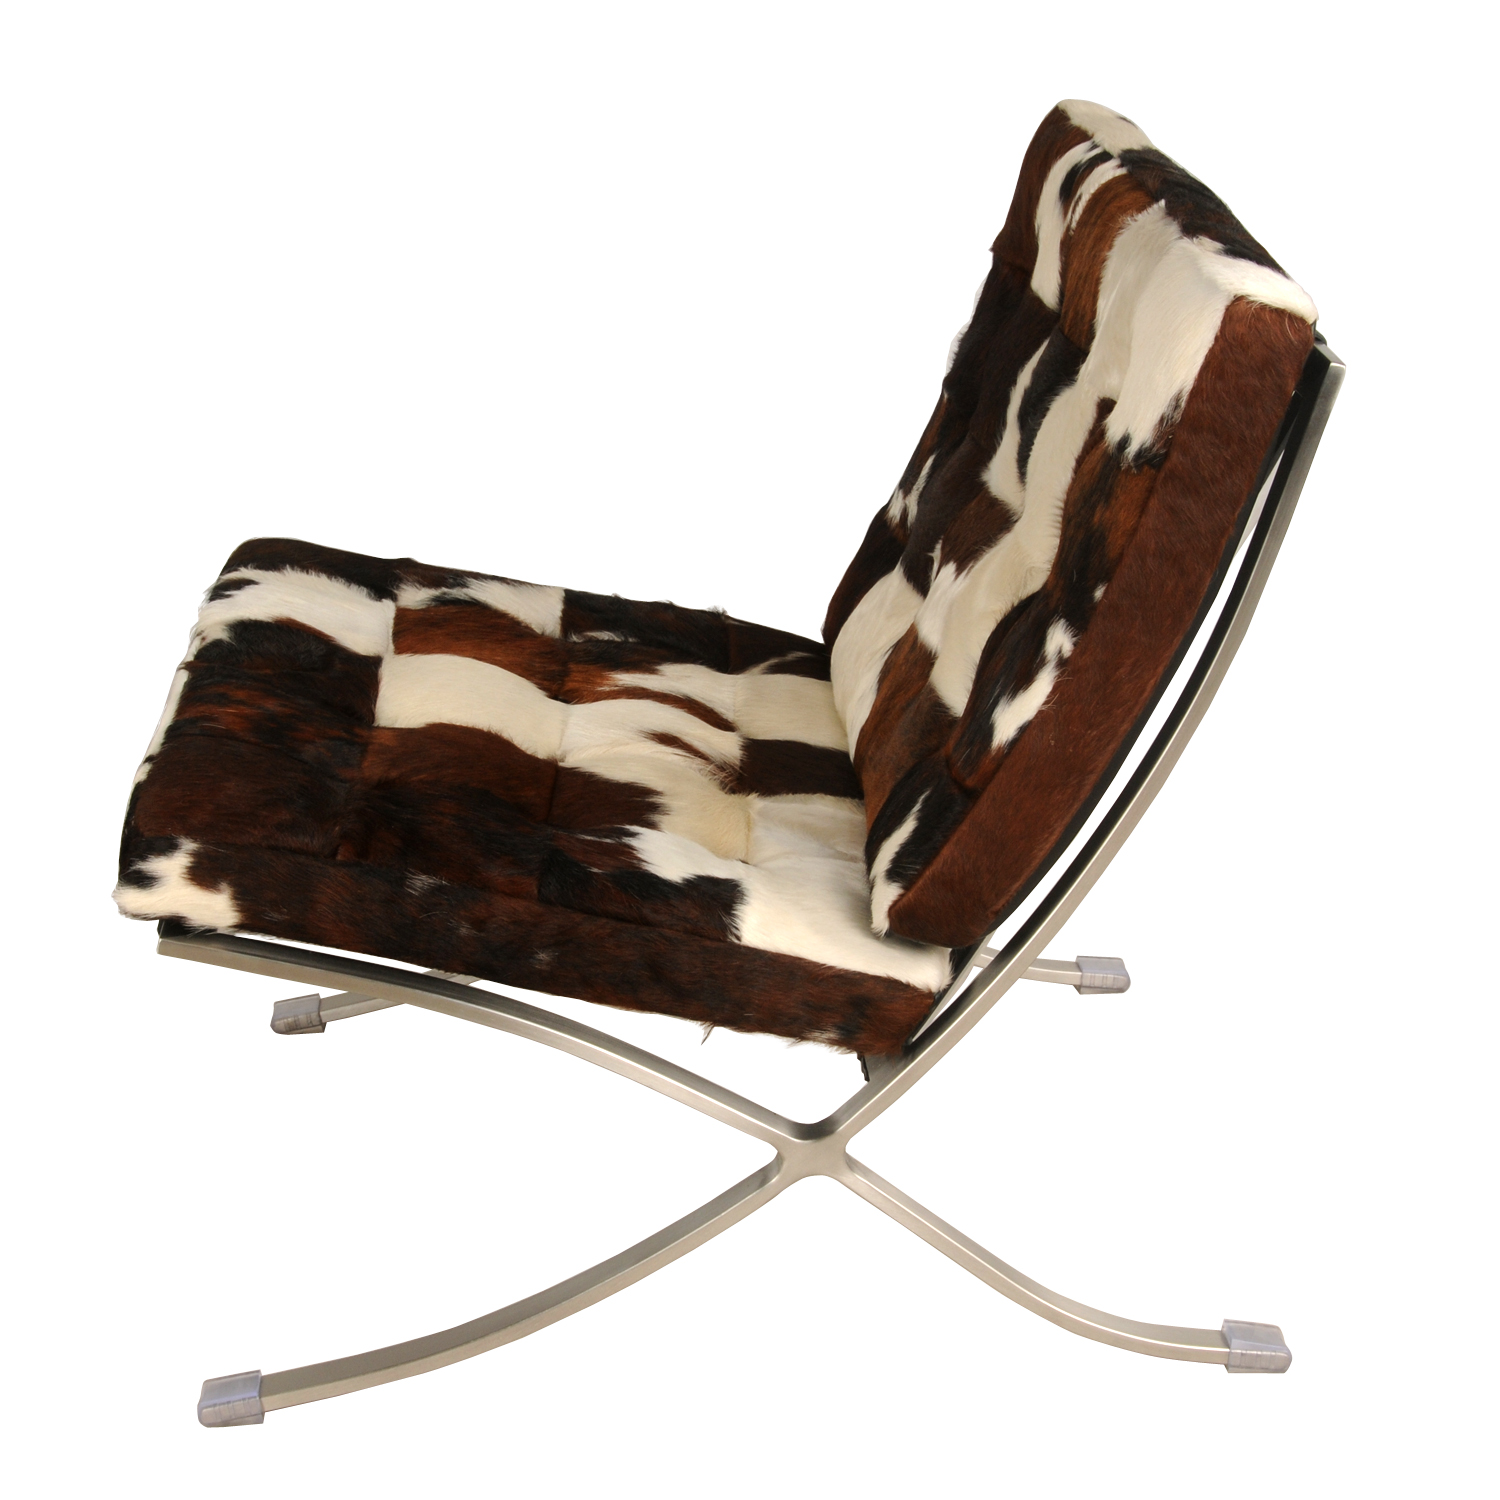 black and white cowhide chair bean bag images 6300027 npd home furniture wholesale lifestyle